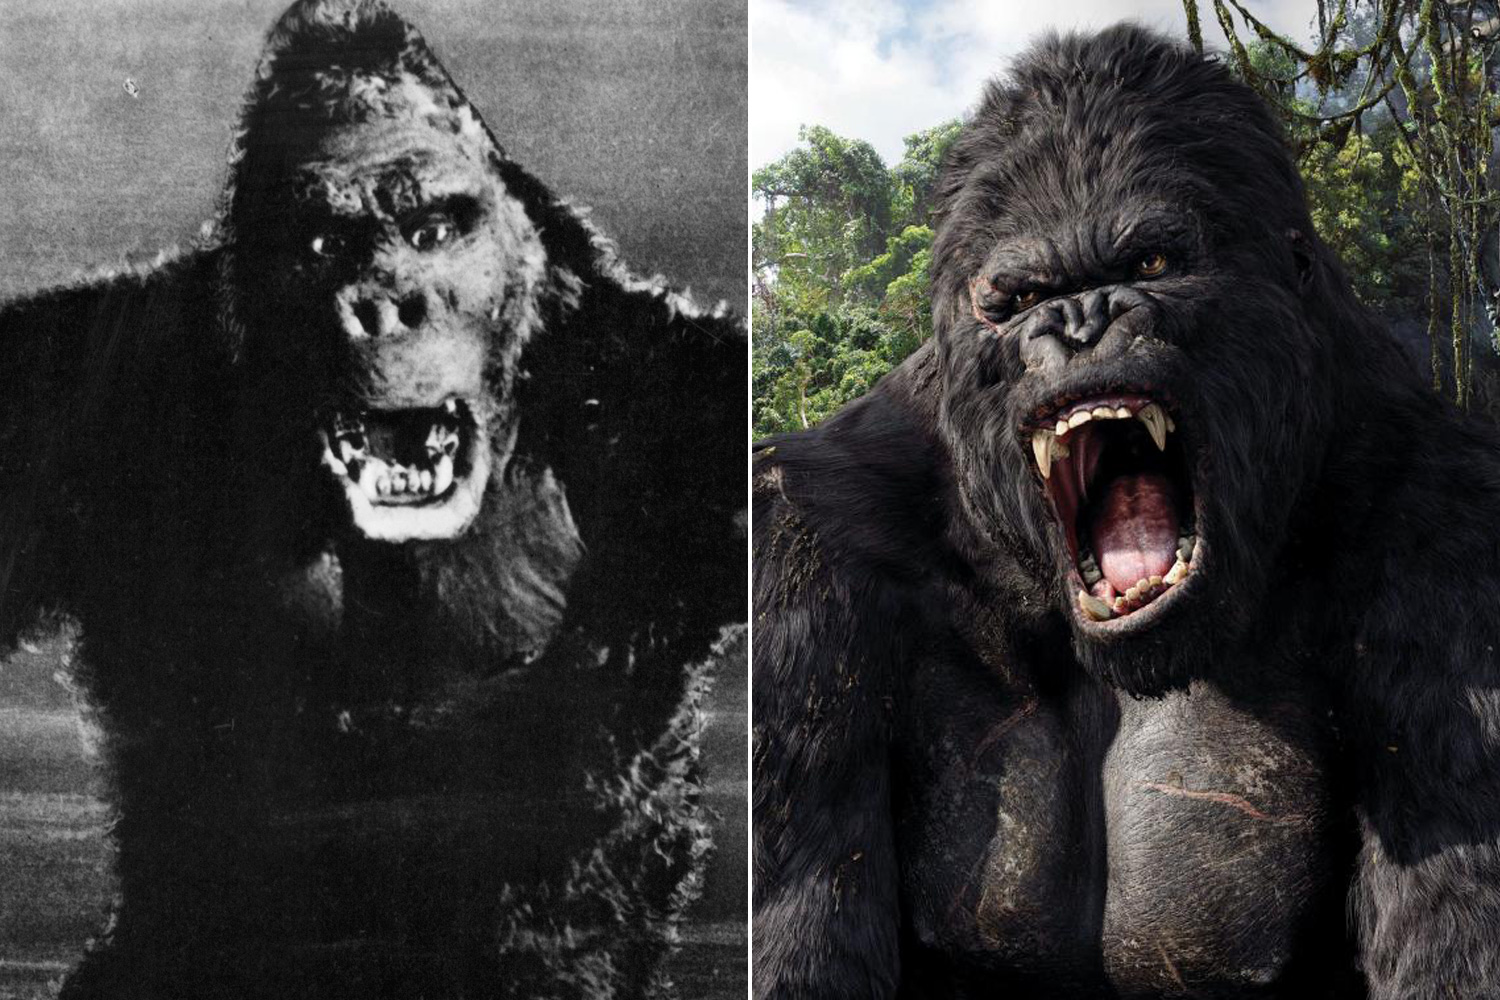 King Kong first terrorized damsels in distress in the eponymous 1933 film, which was noted for its use of stop-motion animation to render the giant gorilla. The franchise was rebooted in 2005 by Peter Jackson in another film by the same name.